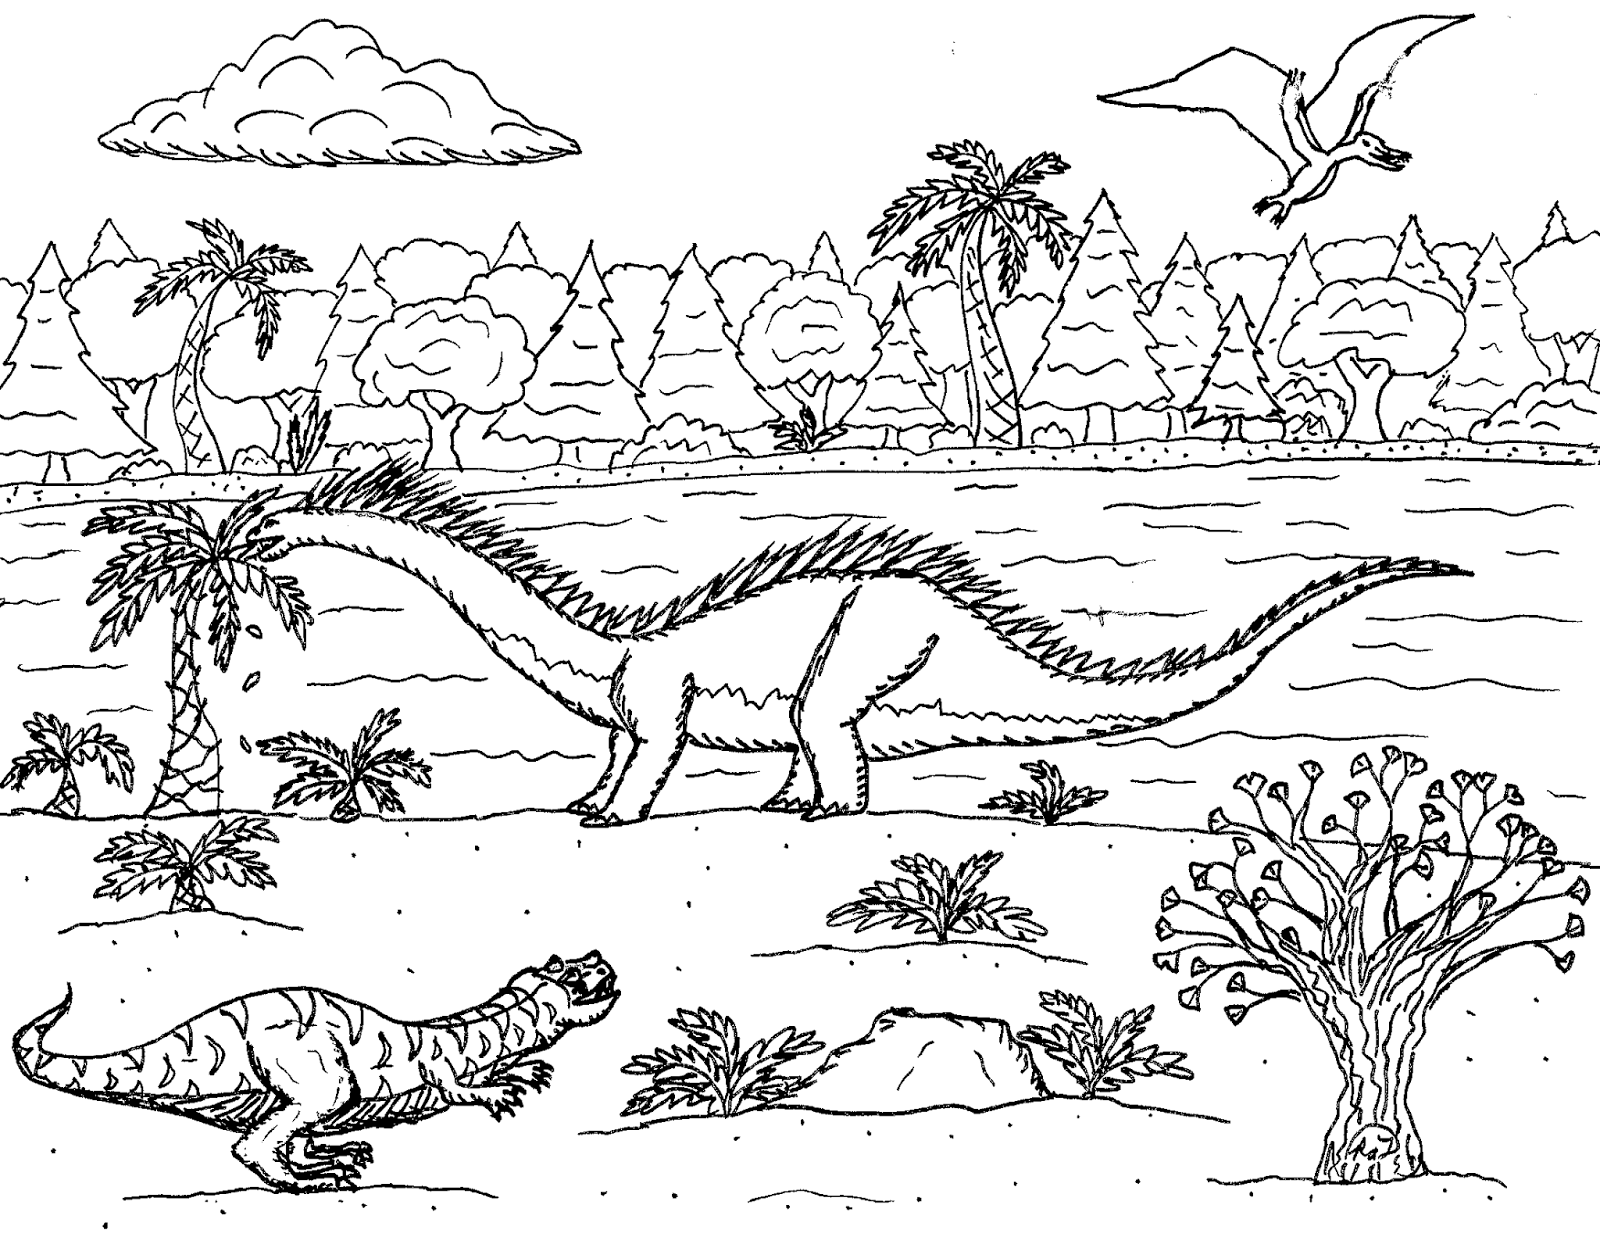 Robin S Great Coloring Pages Amargasaurus The Sauropod With Spines